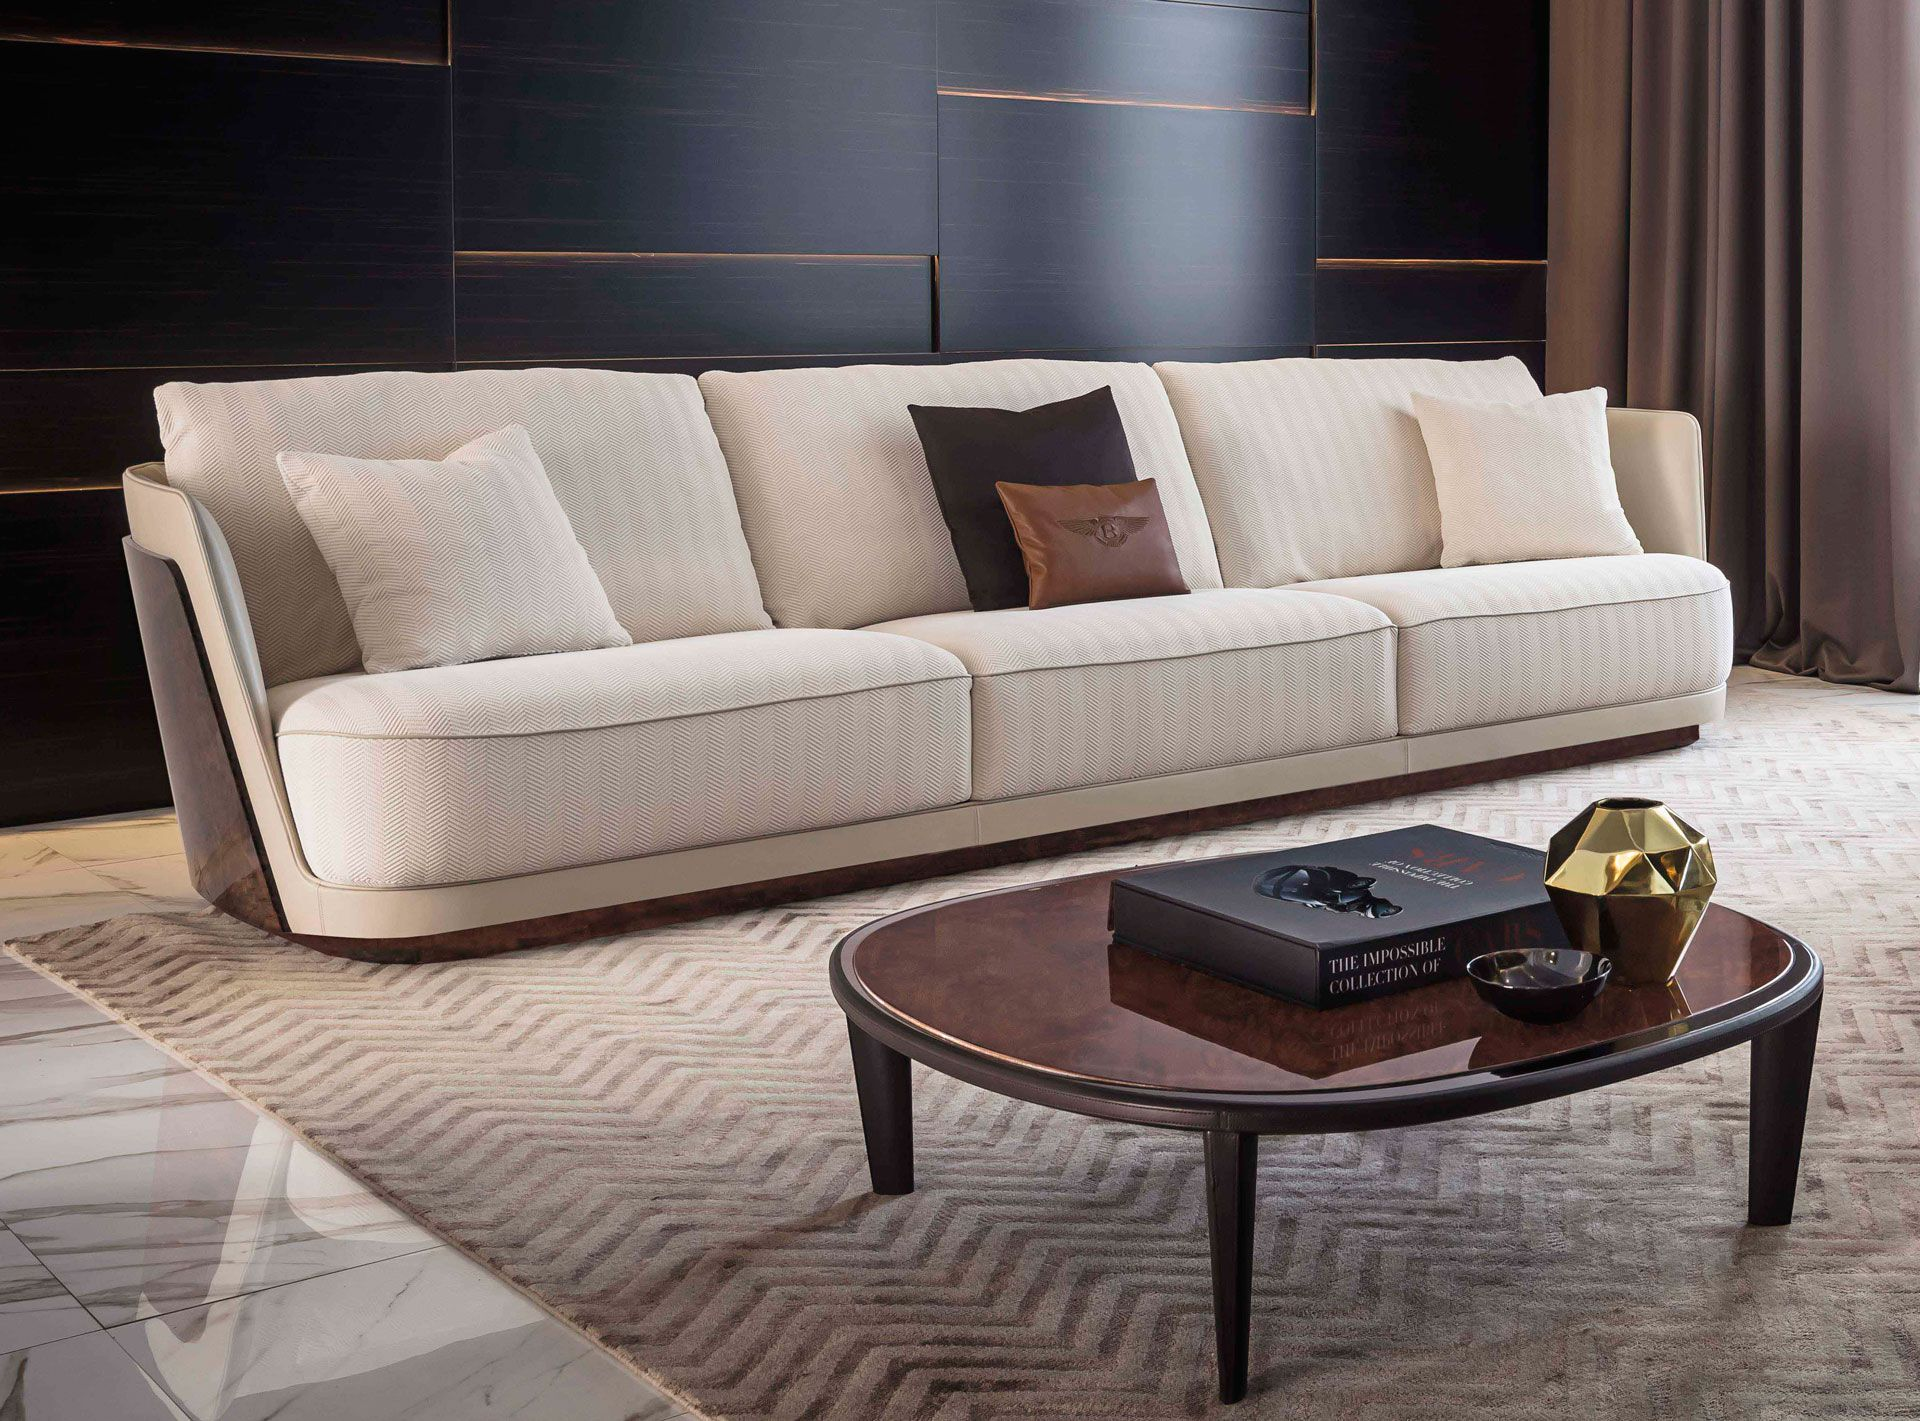 Luxury Living Luxury Italian Furniture Enjoy The Richmond Sofa As You Would Contemporary Designers Furniture Da Vinci Lifestyle Luxury Italian Furniture Furniture Living Room Sets Furniture